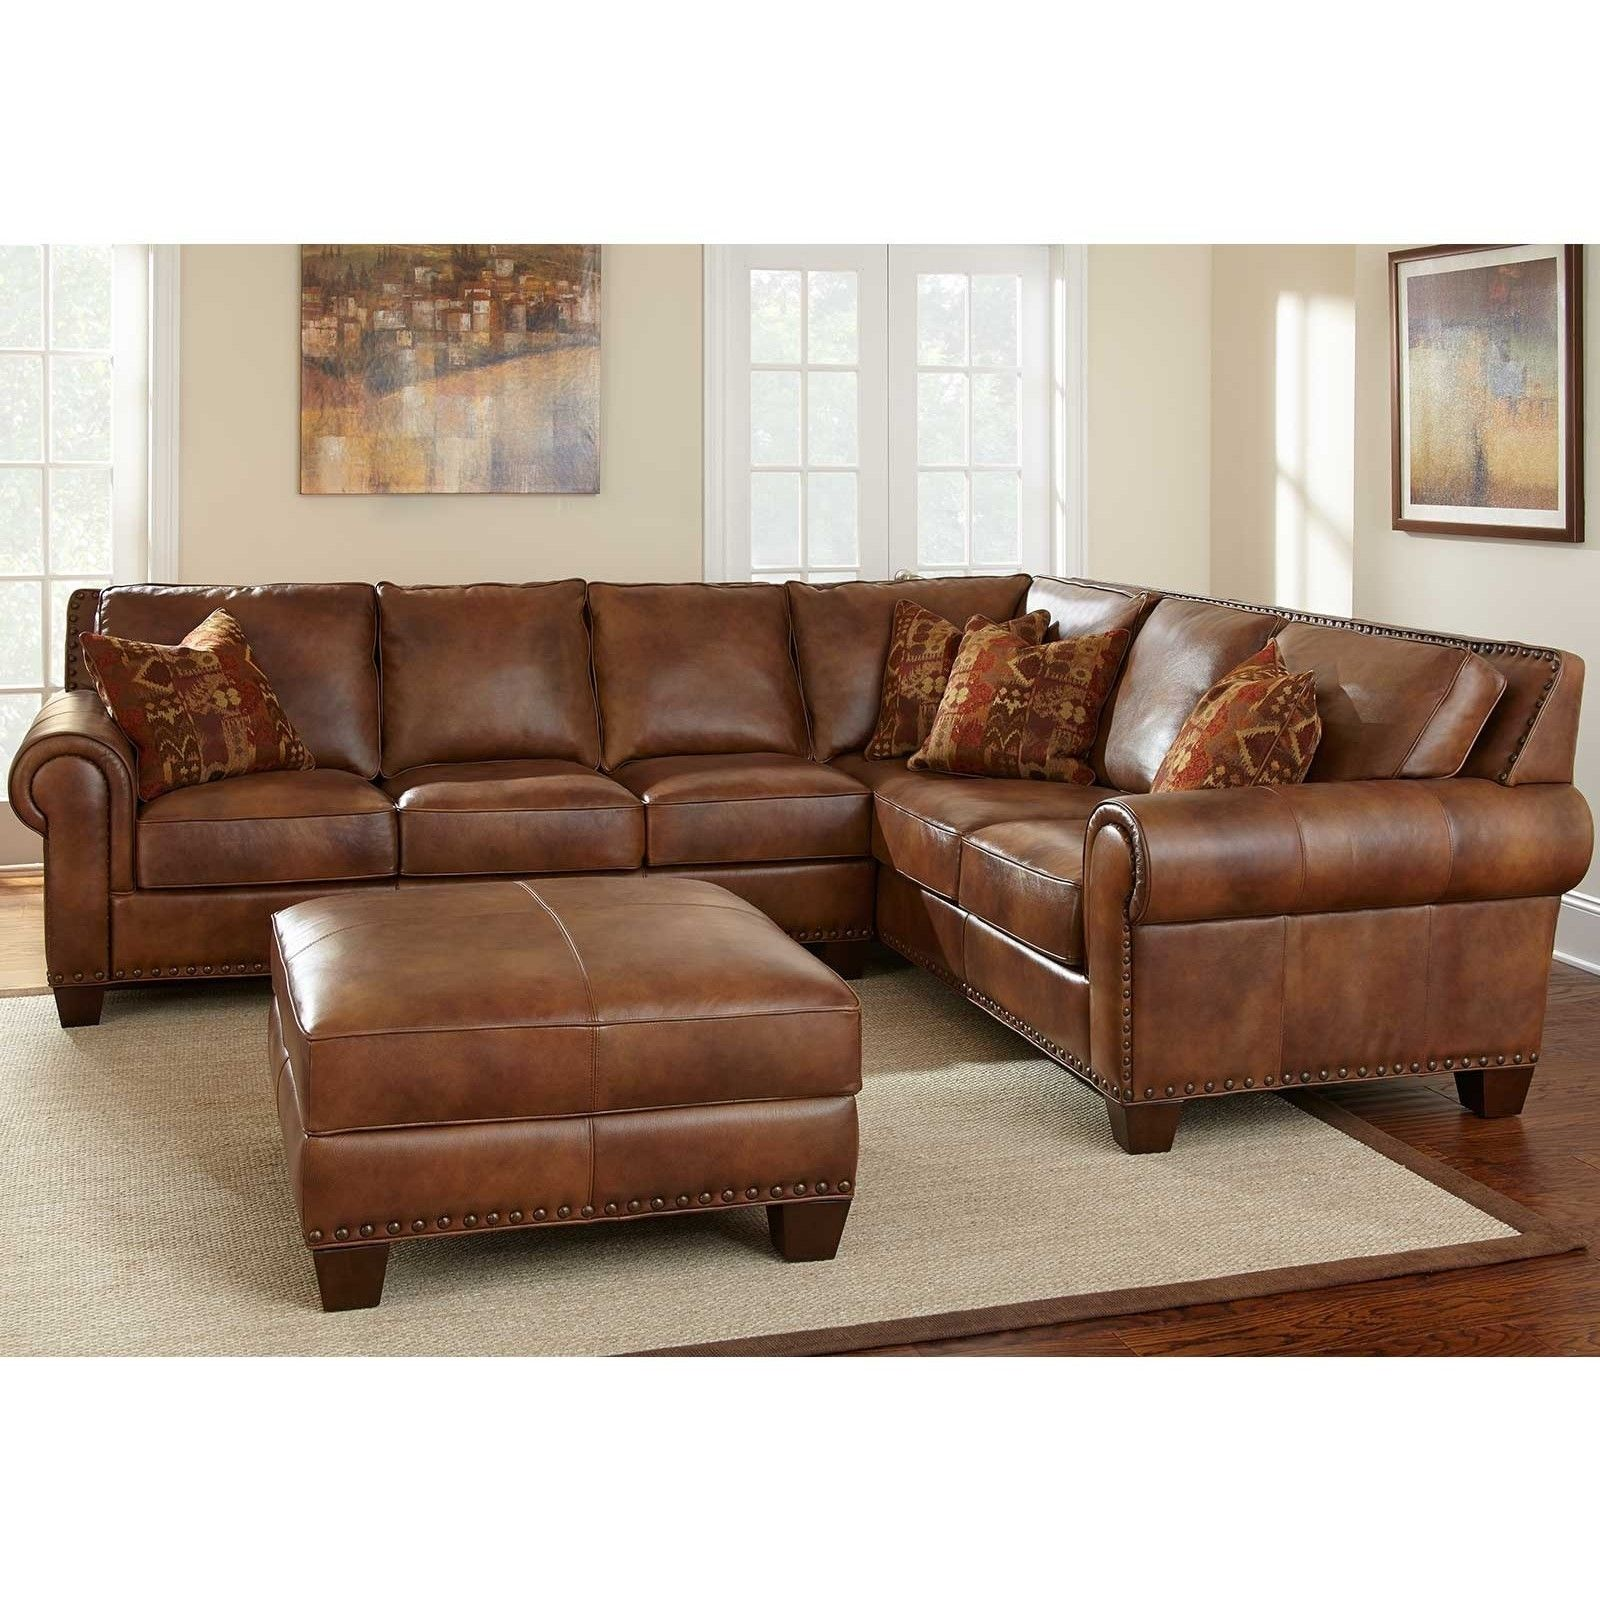 Soft Brown Leather Sectional Sofa